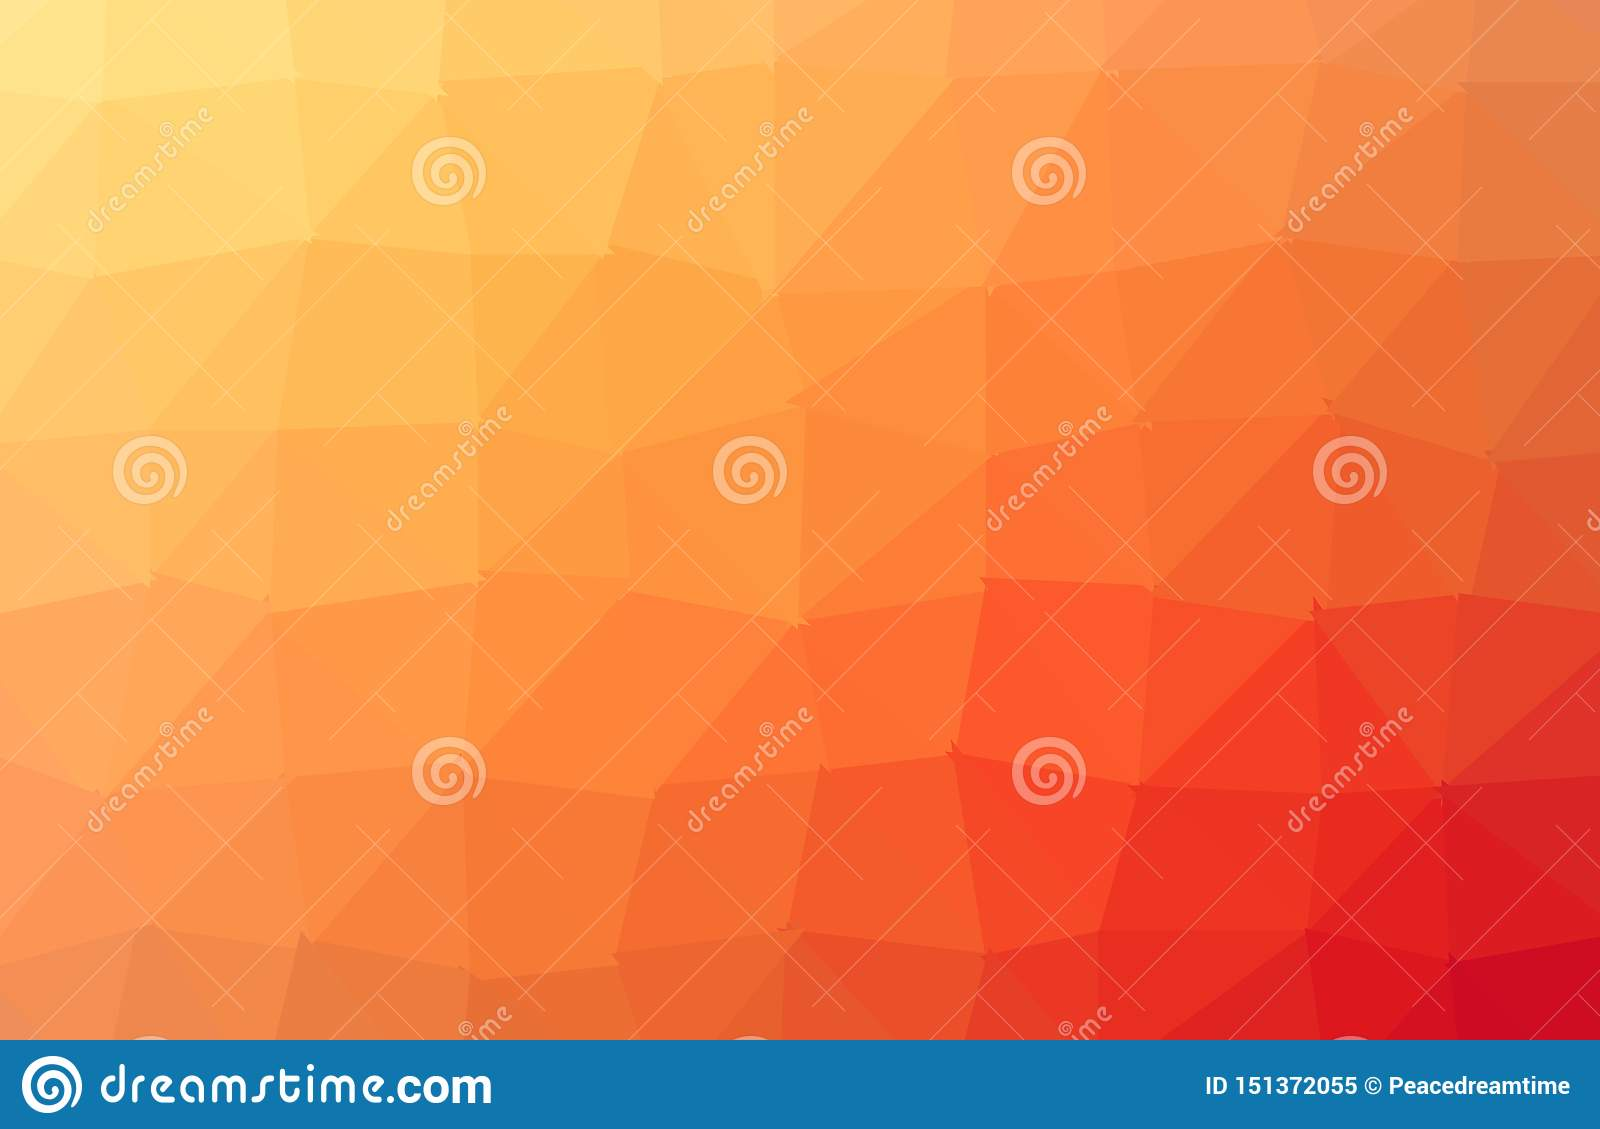 Dark Orange polygonal illustration, which consist of triangles. Triangular design for your business. Creative geometric background